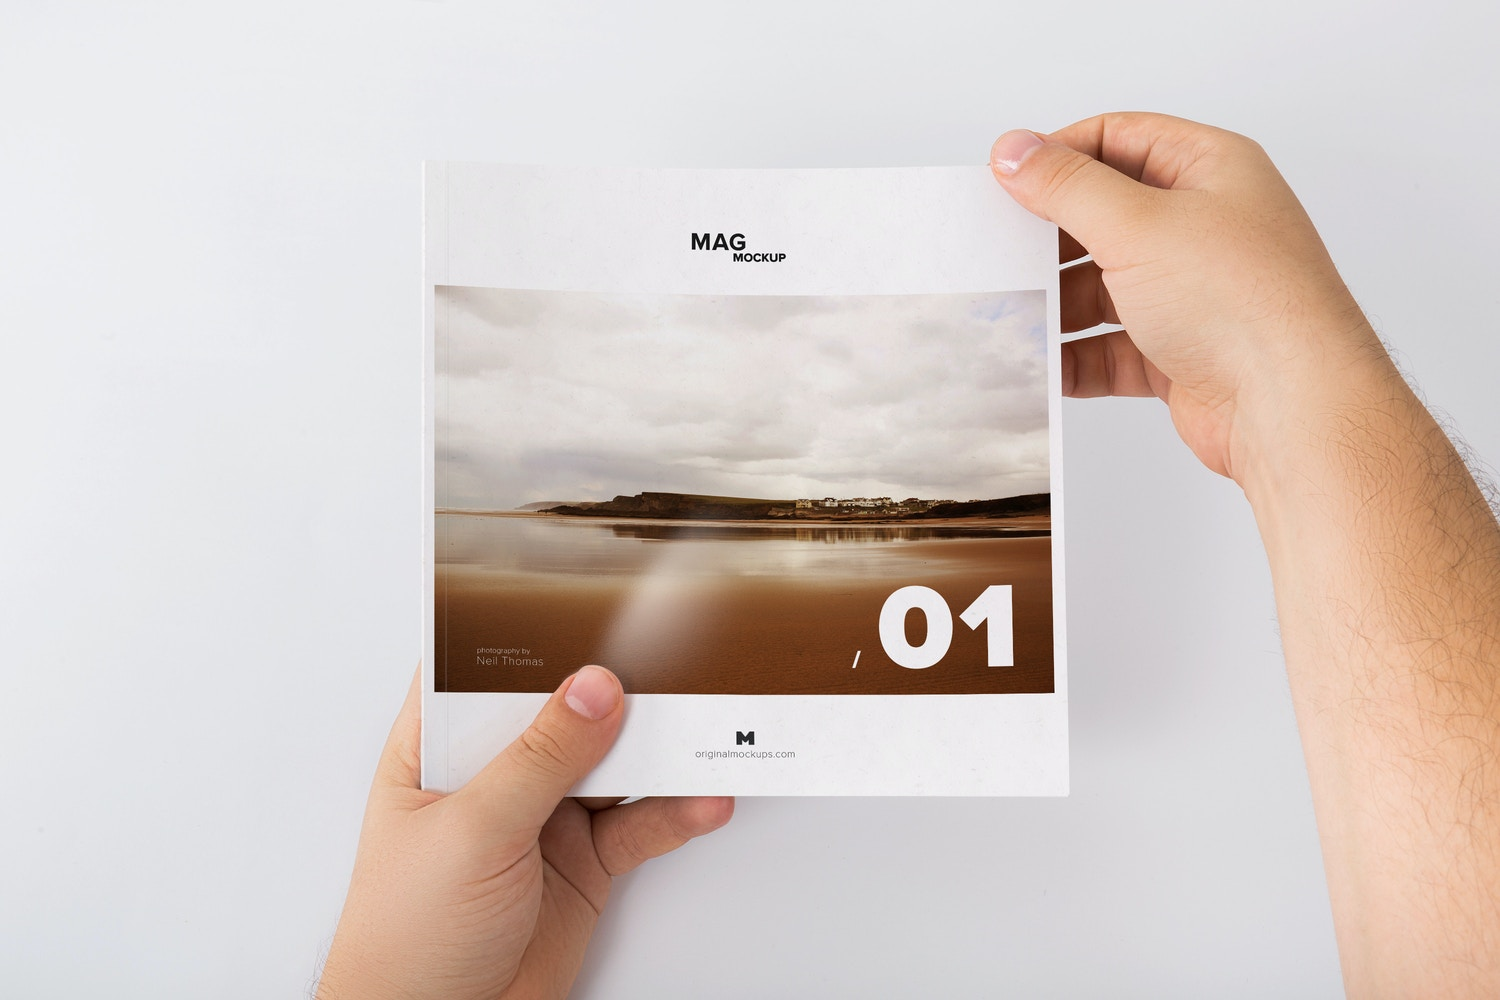 Holding Closed Square Magazine Mockup 01 by Original Mockups on Original Mockups